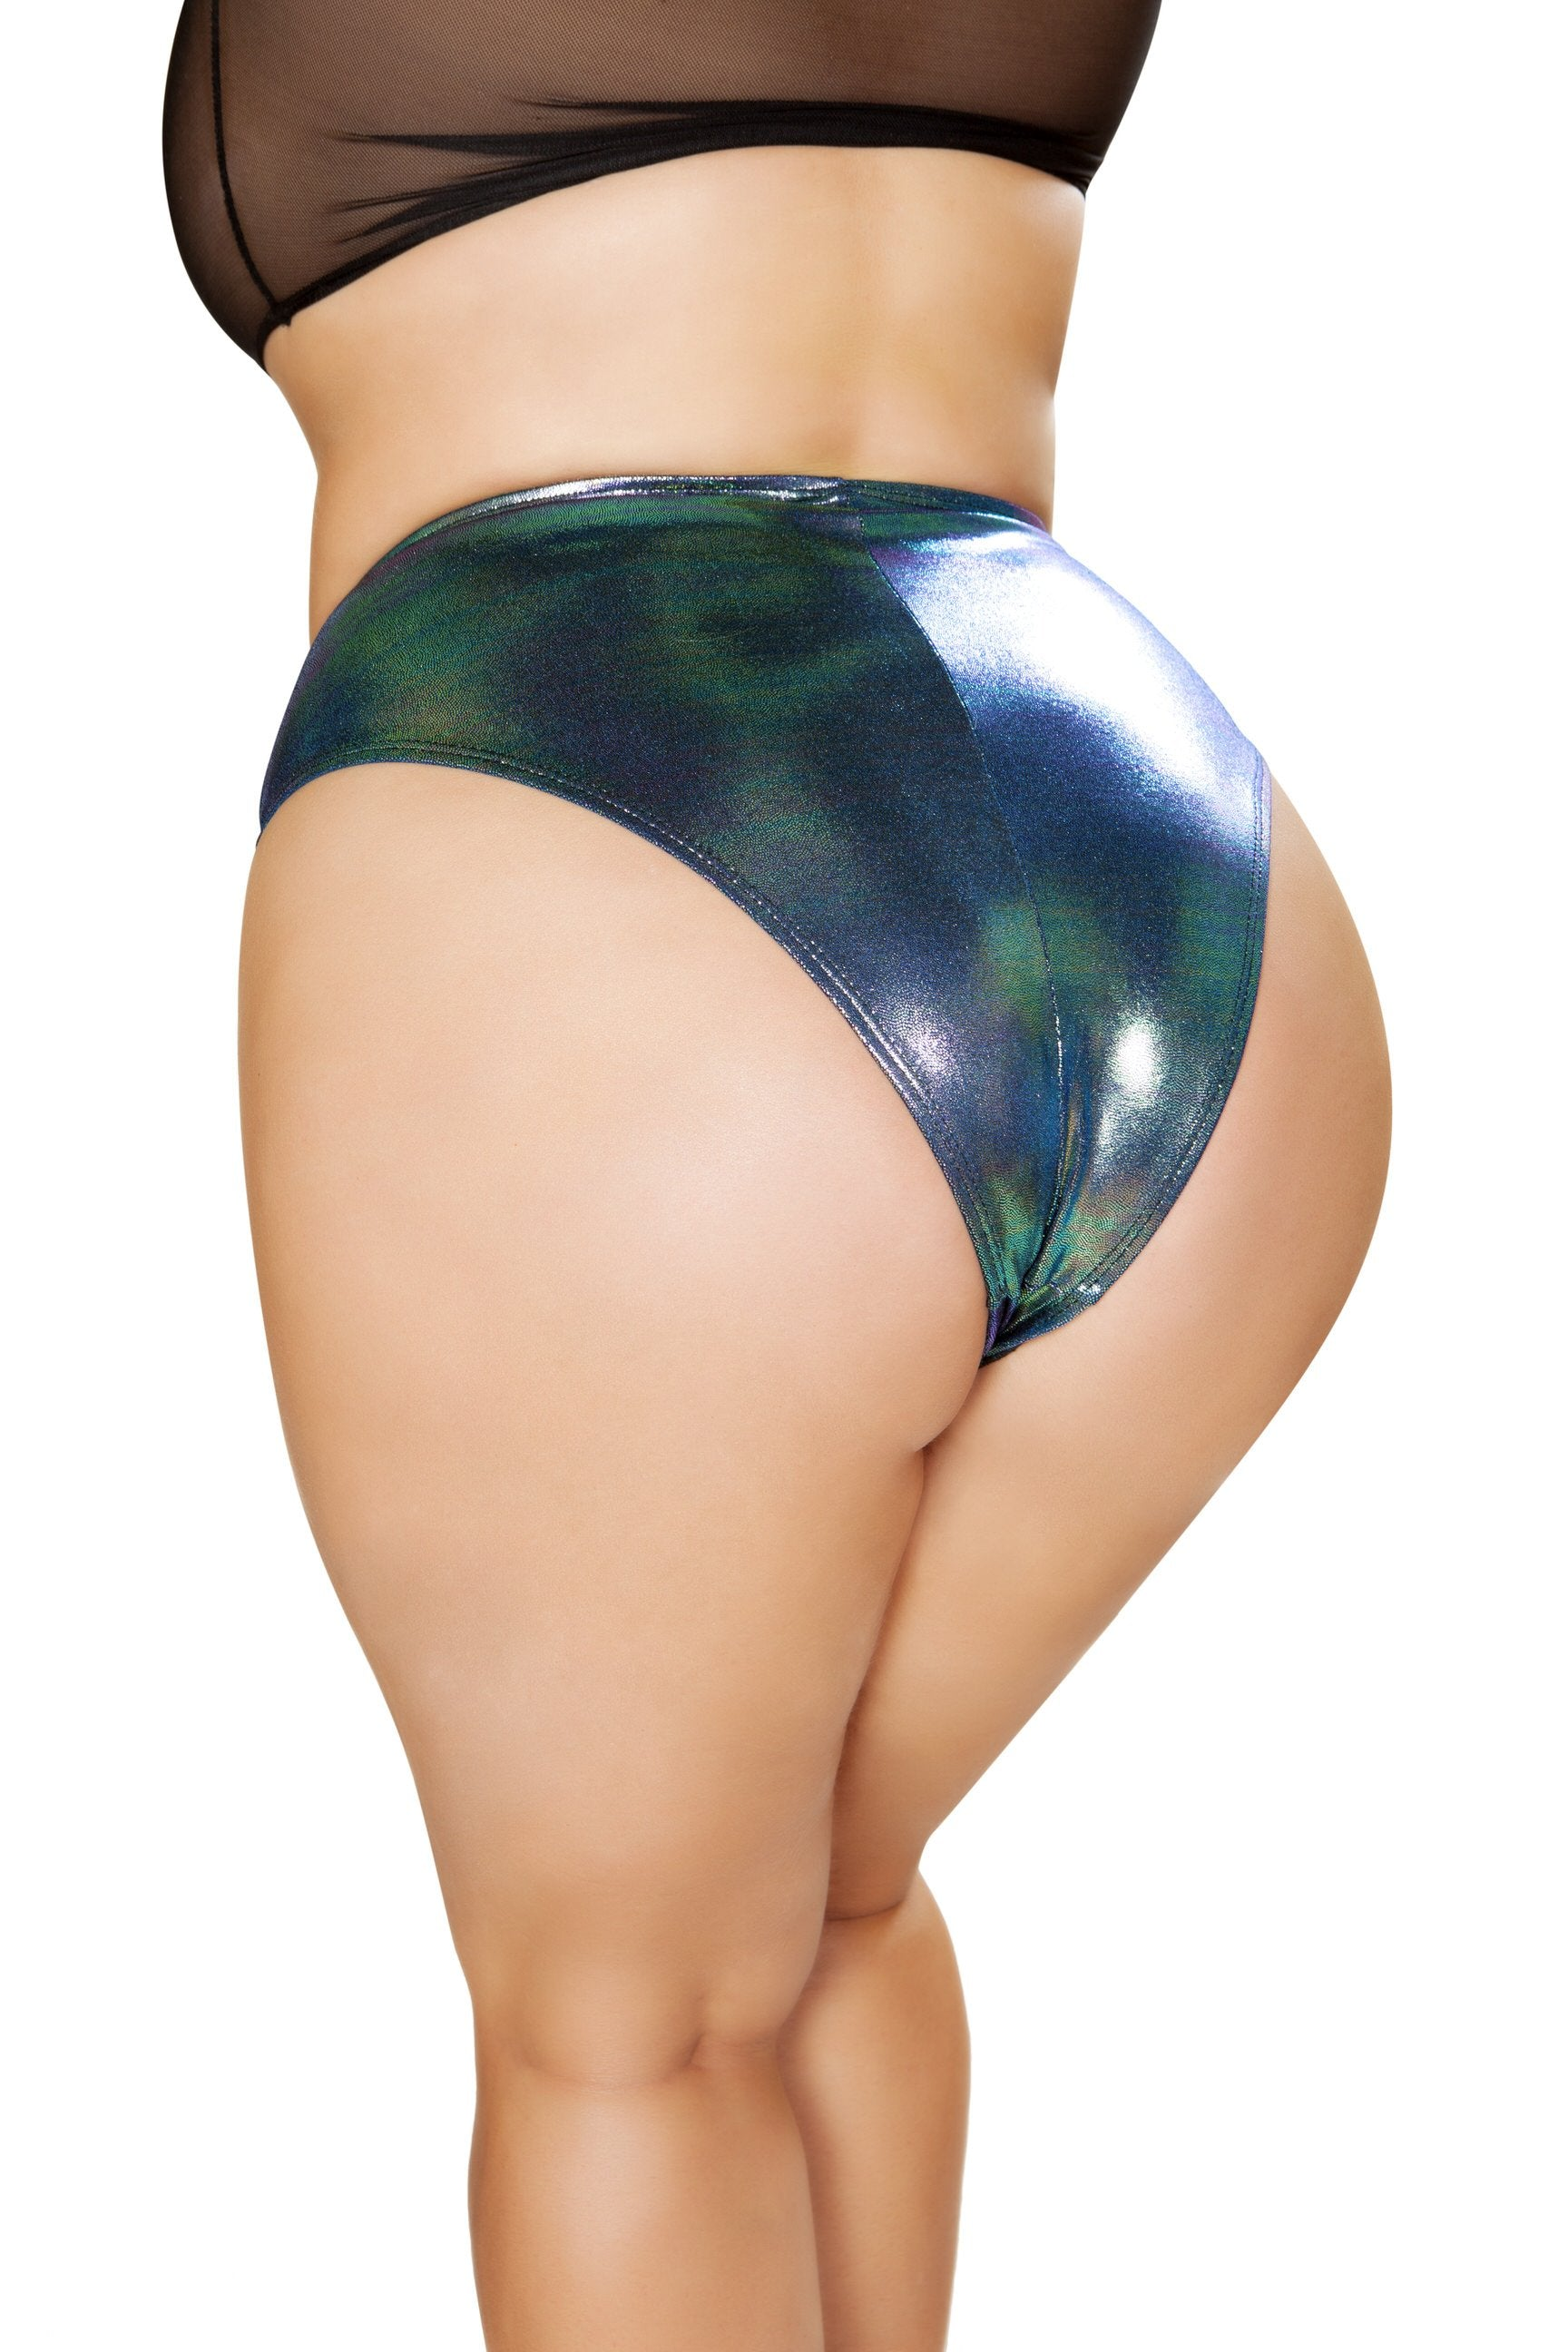 b1552dd4ae Buy 1pc High-Waisted Shorts with Zipper Front Closure from Rave Fix for  $18.75 with